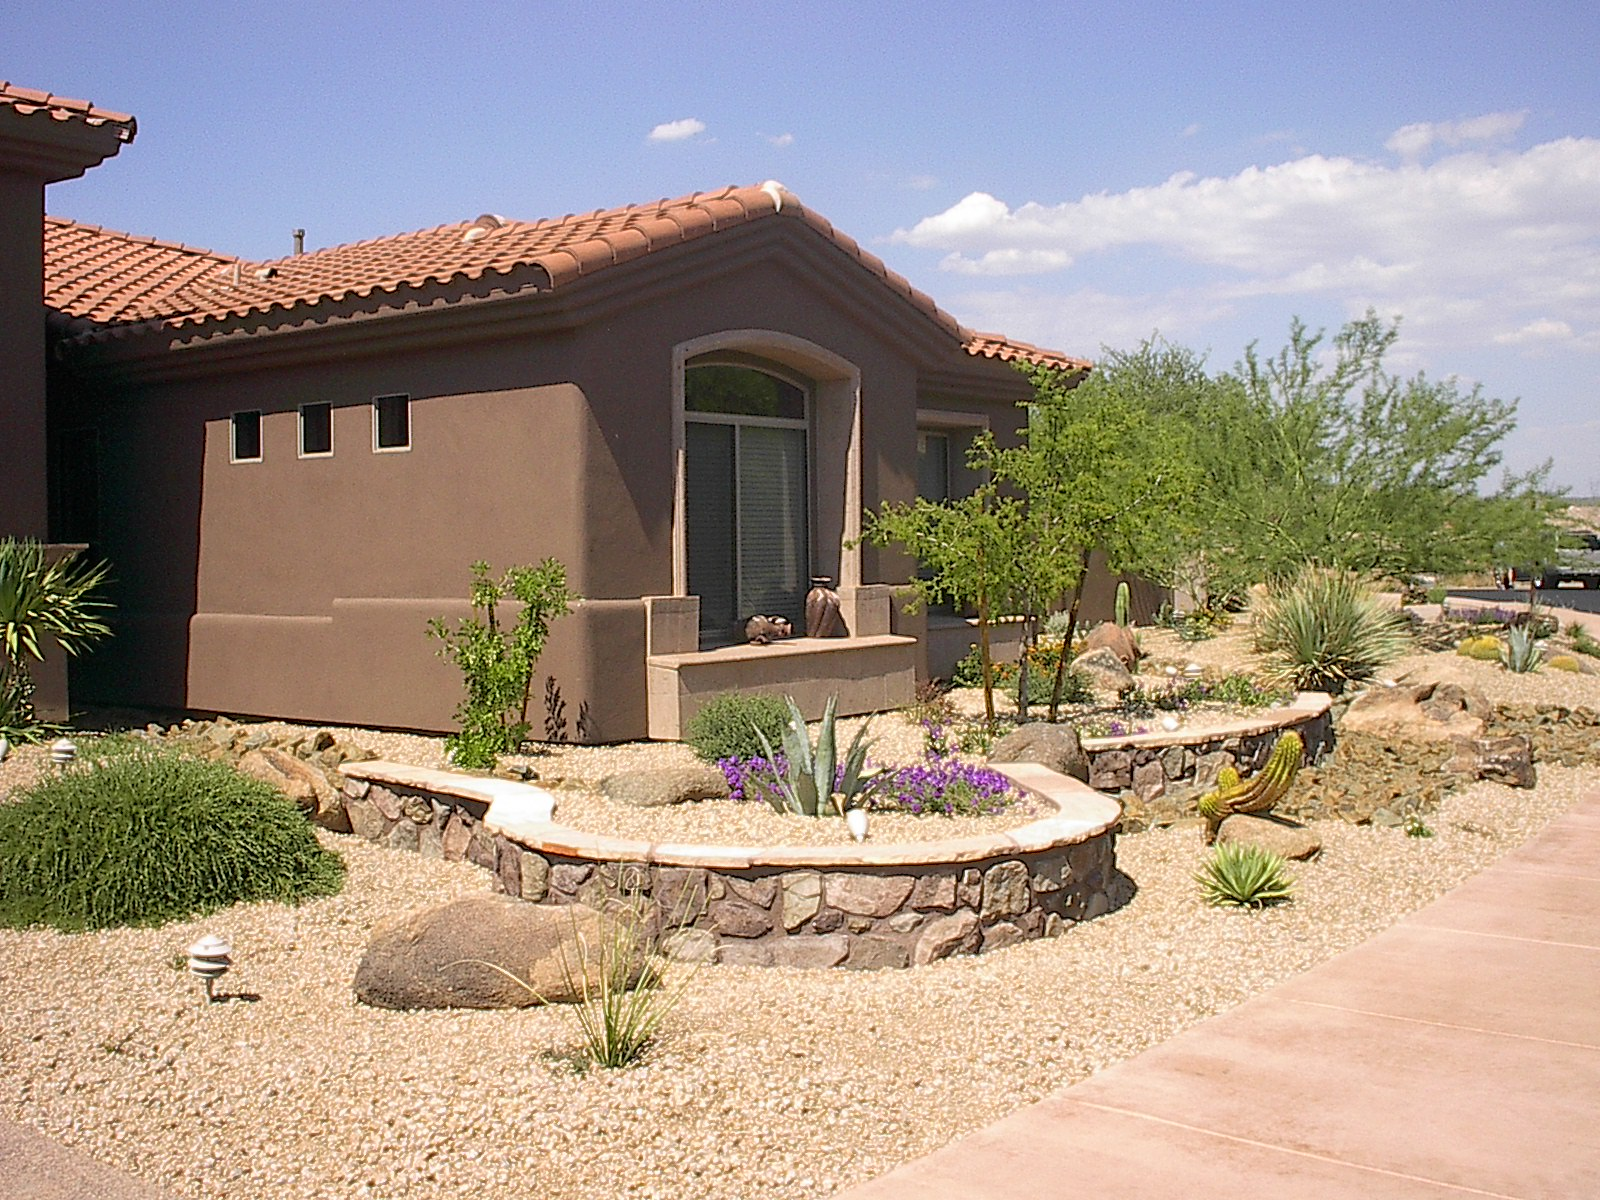 Life short front yard landscaping ideas for colonial home for Desert landscape